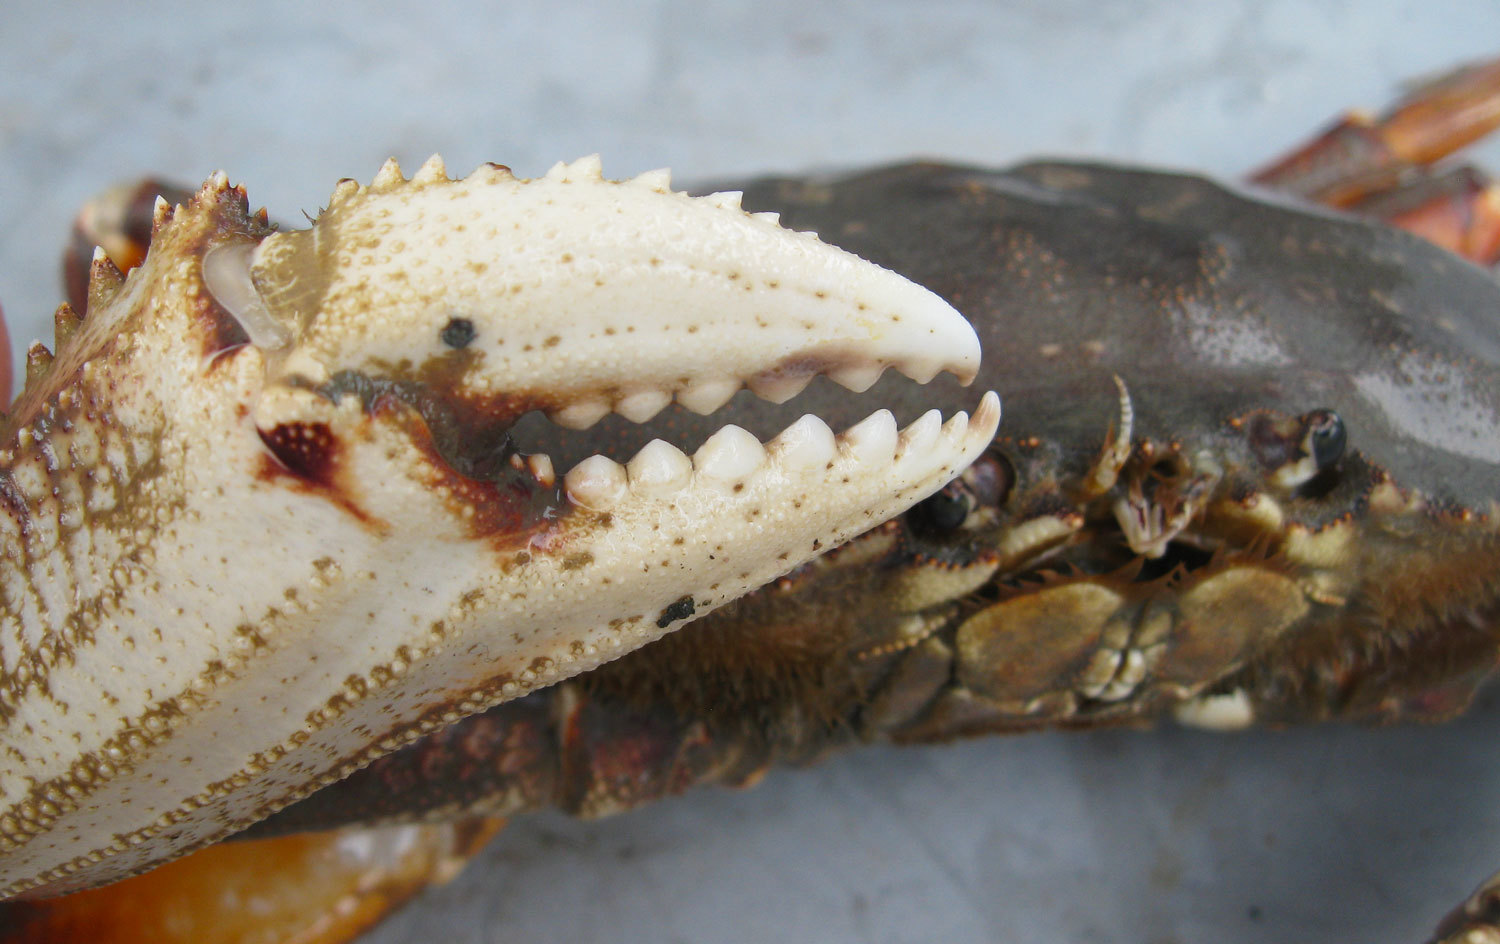 Dungeness crab's powerful pincer